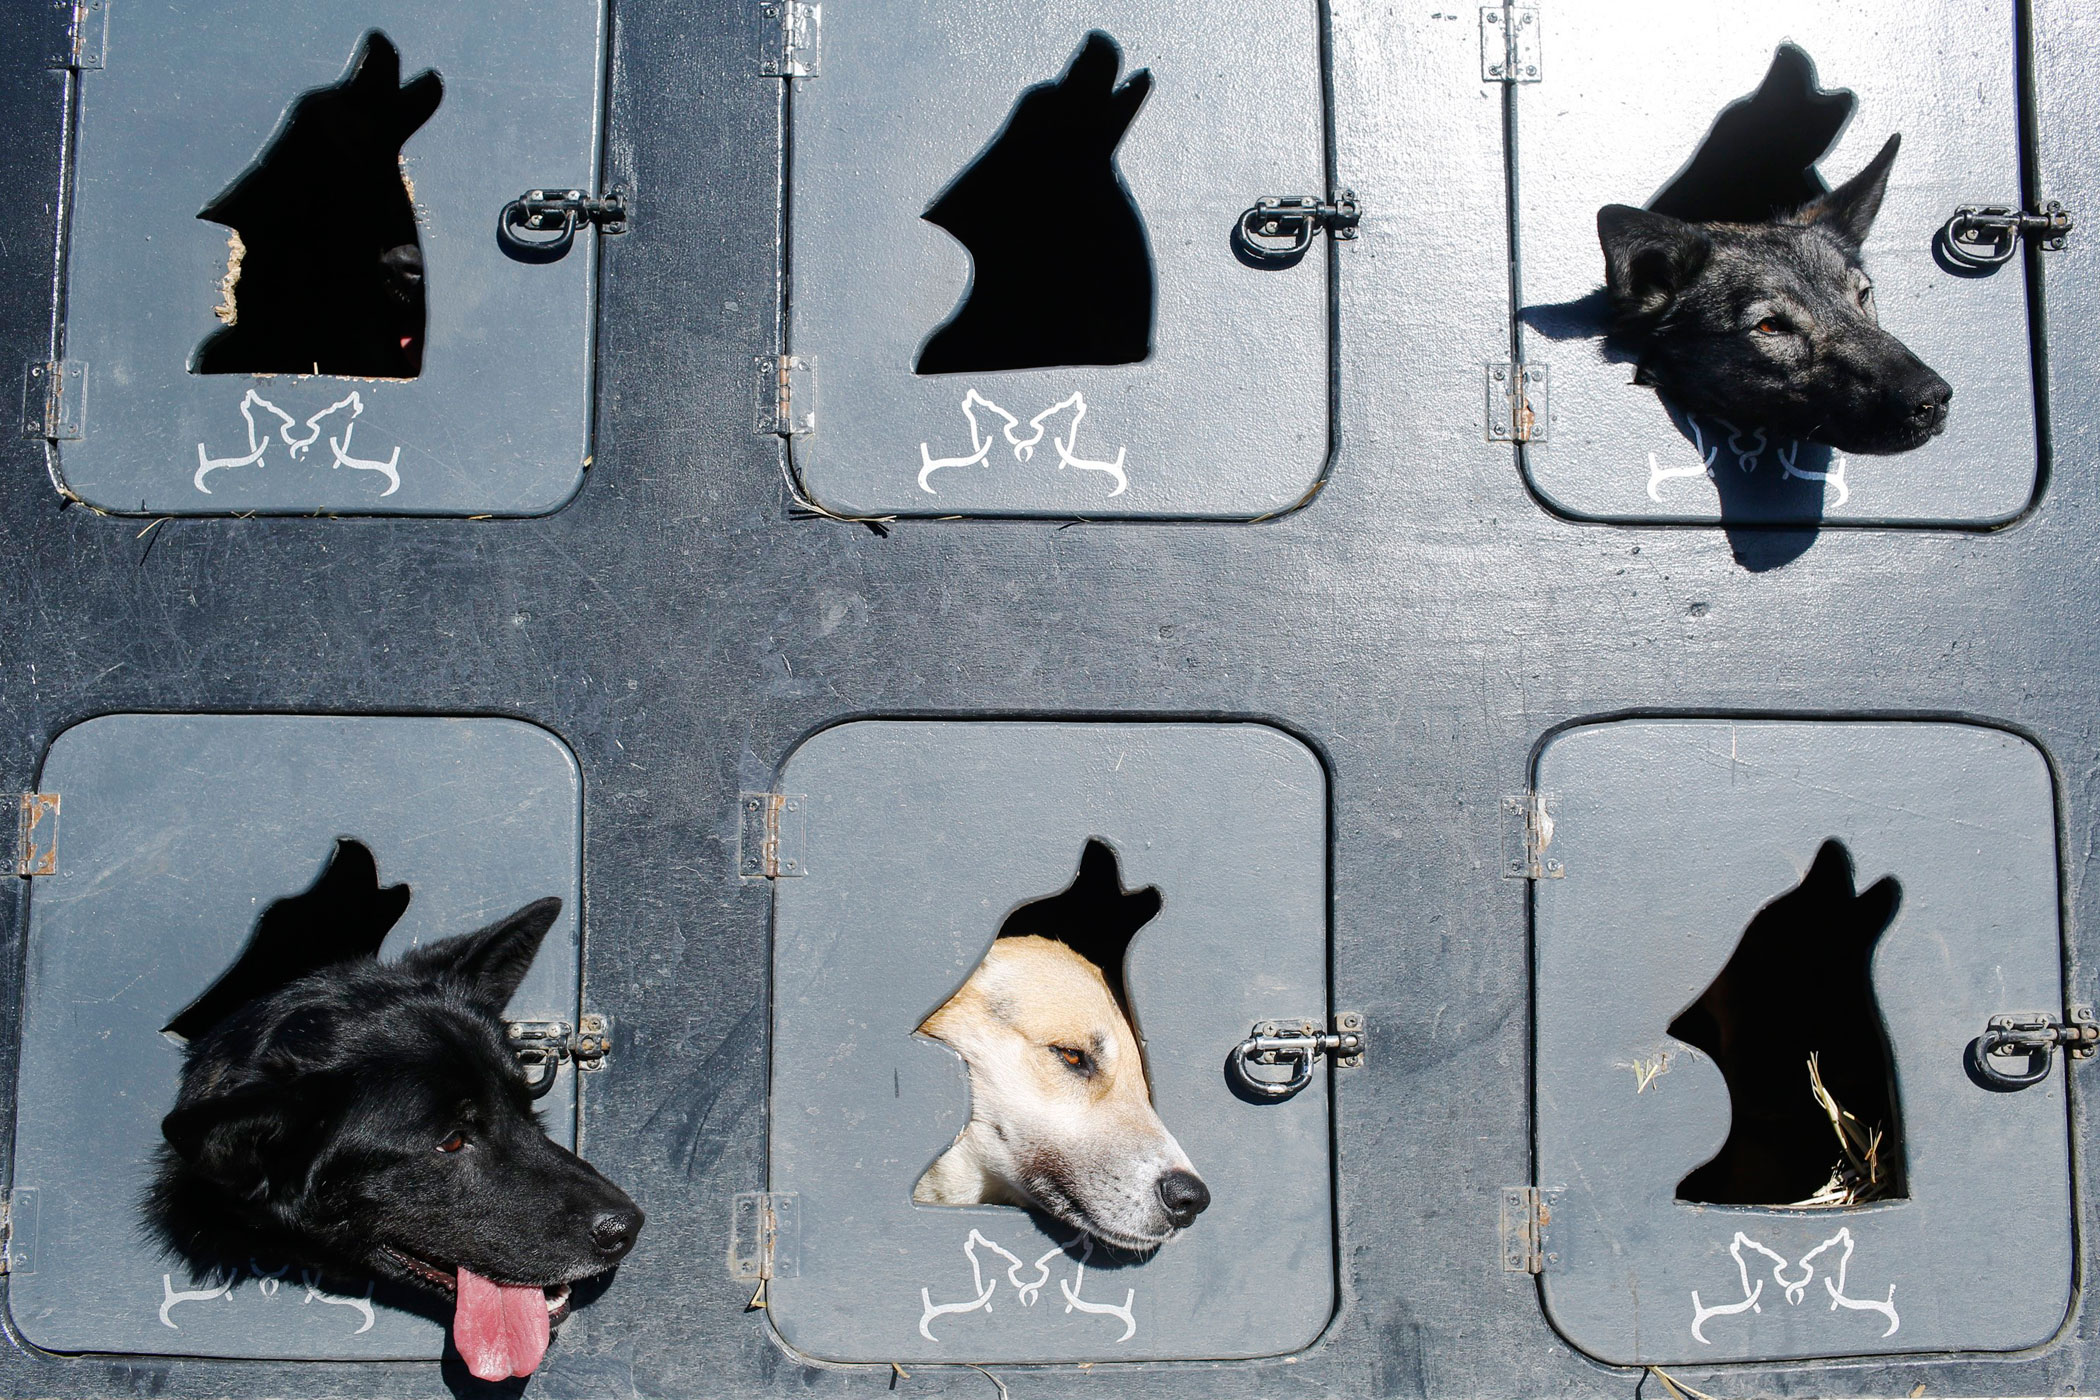 Musher Justin Savidis' dogs wait in the truck before the restart of the Iditarod Trail Sled Dog Race in Willow, Alaska on March 6.